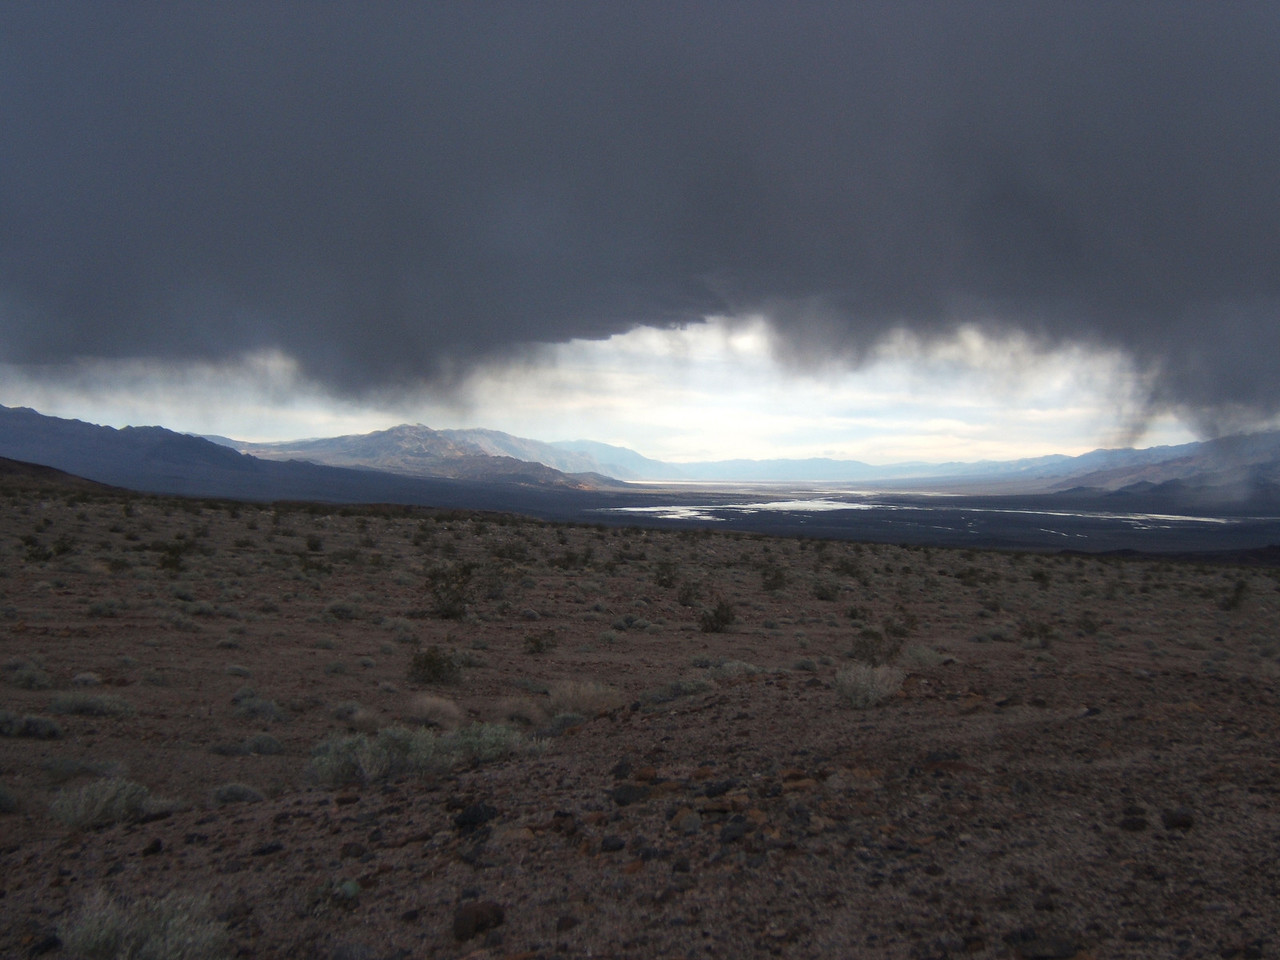 Storm over Badwater